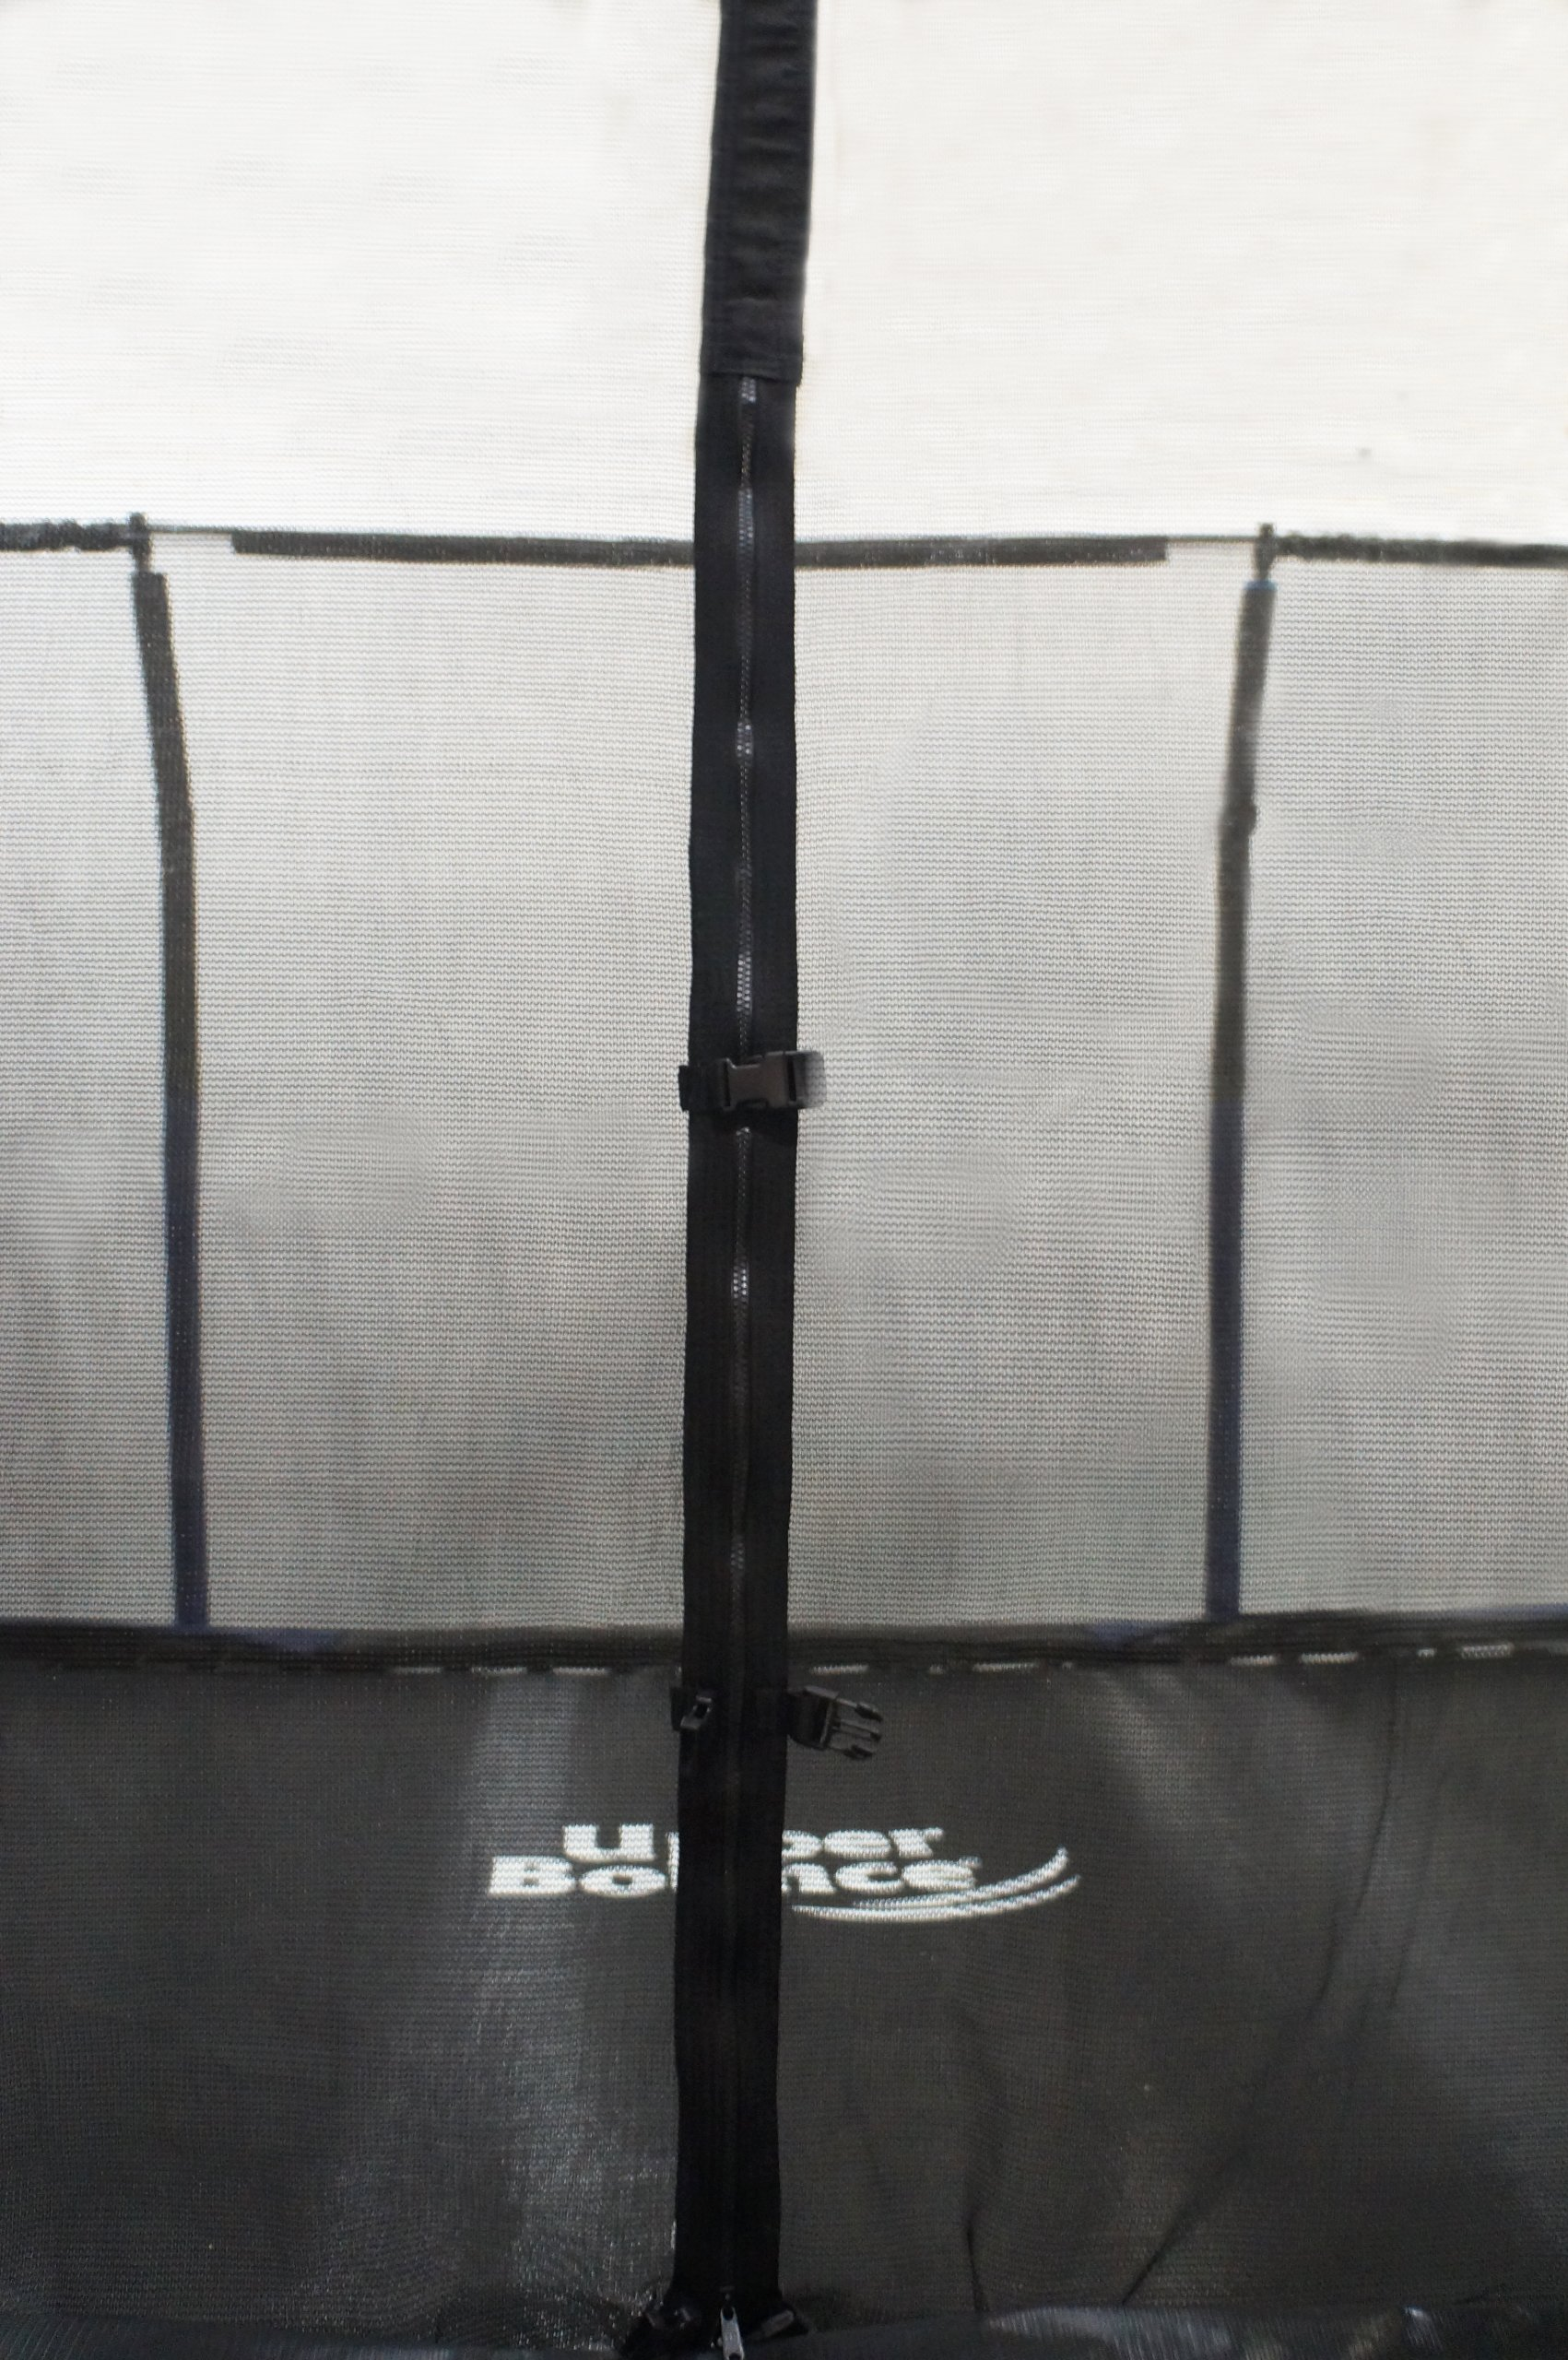 Upper Bounce Easy Assemble Spacious Rectangular Trampoline with Fiber Flex Enclosure Feature, 9 x 15-Feet by Upper Bounce (Image #3)